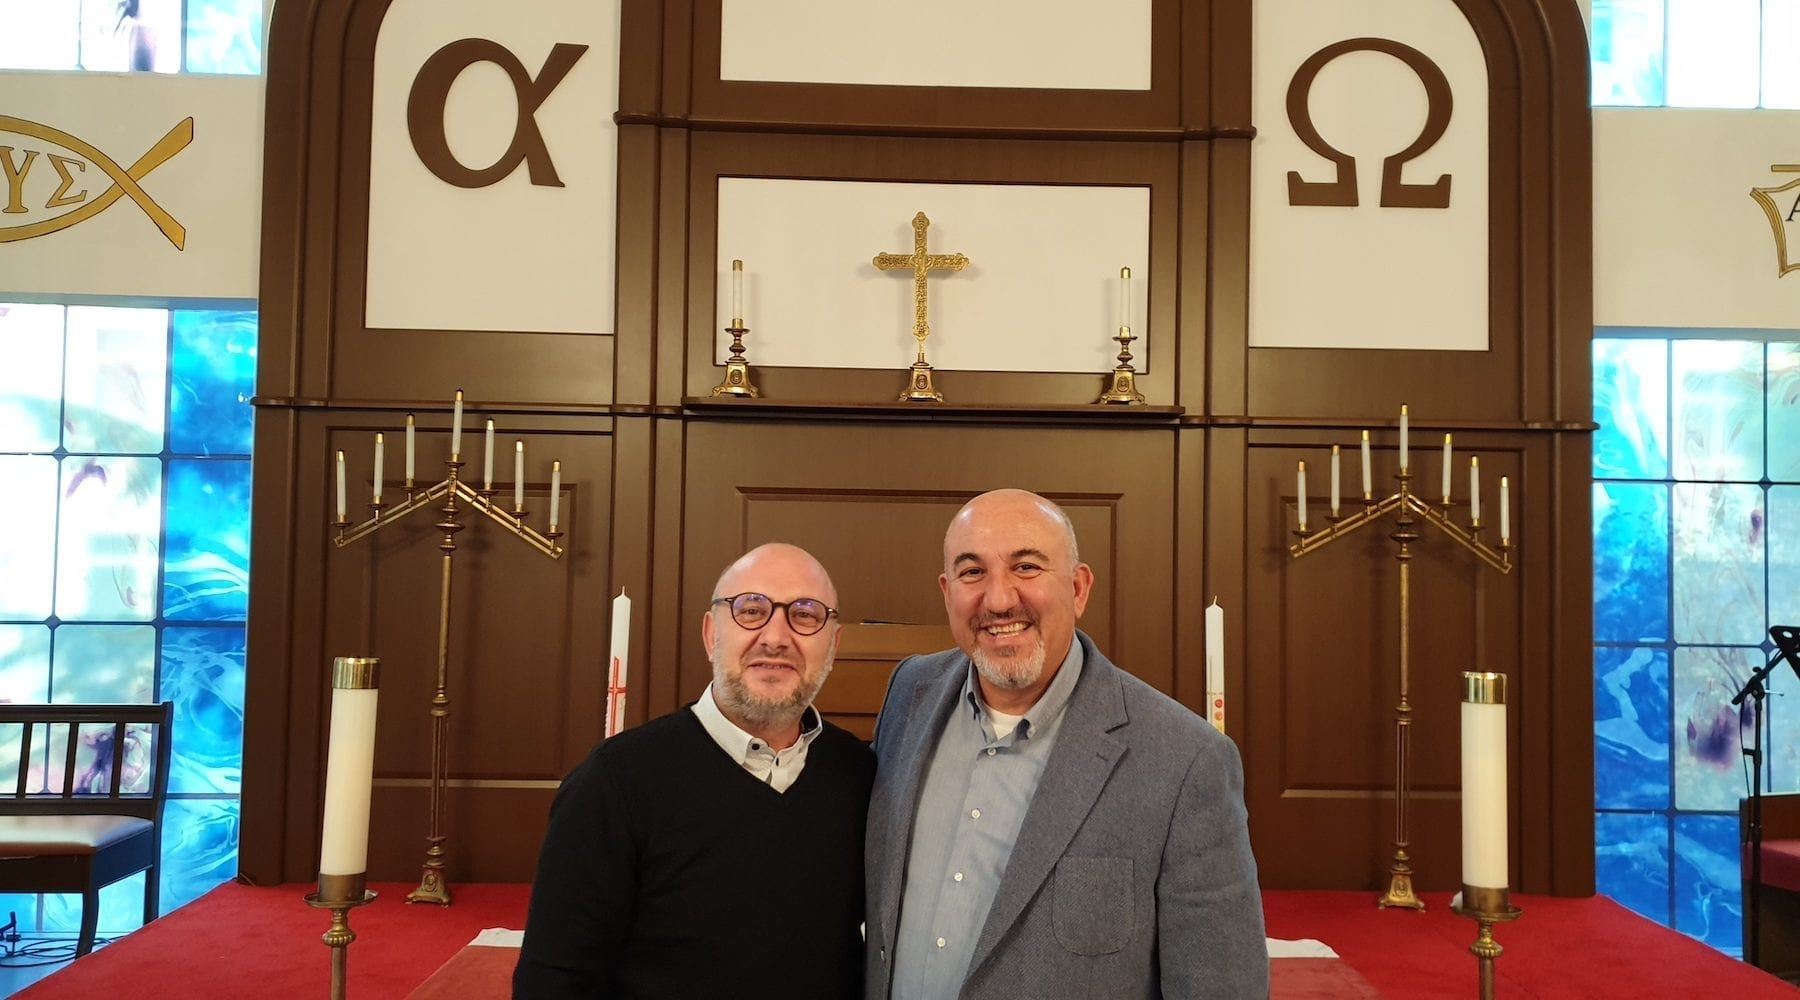 Baptists Cooperate to Spread Gospel Message in Turkey